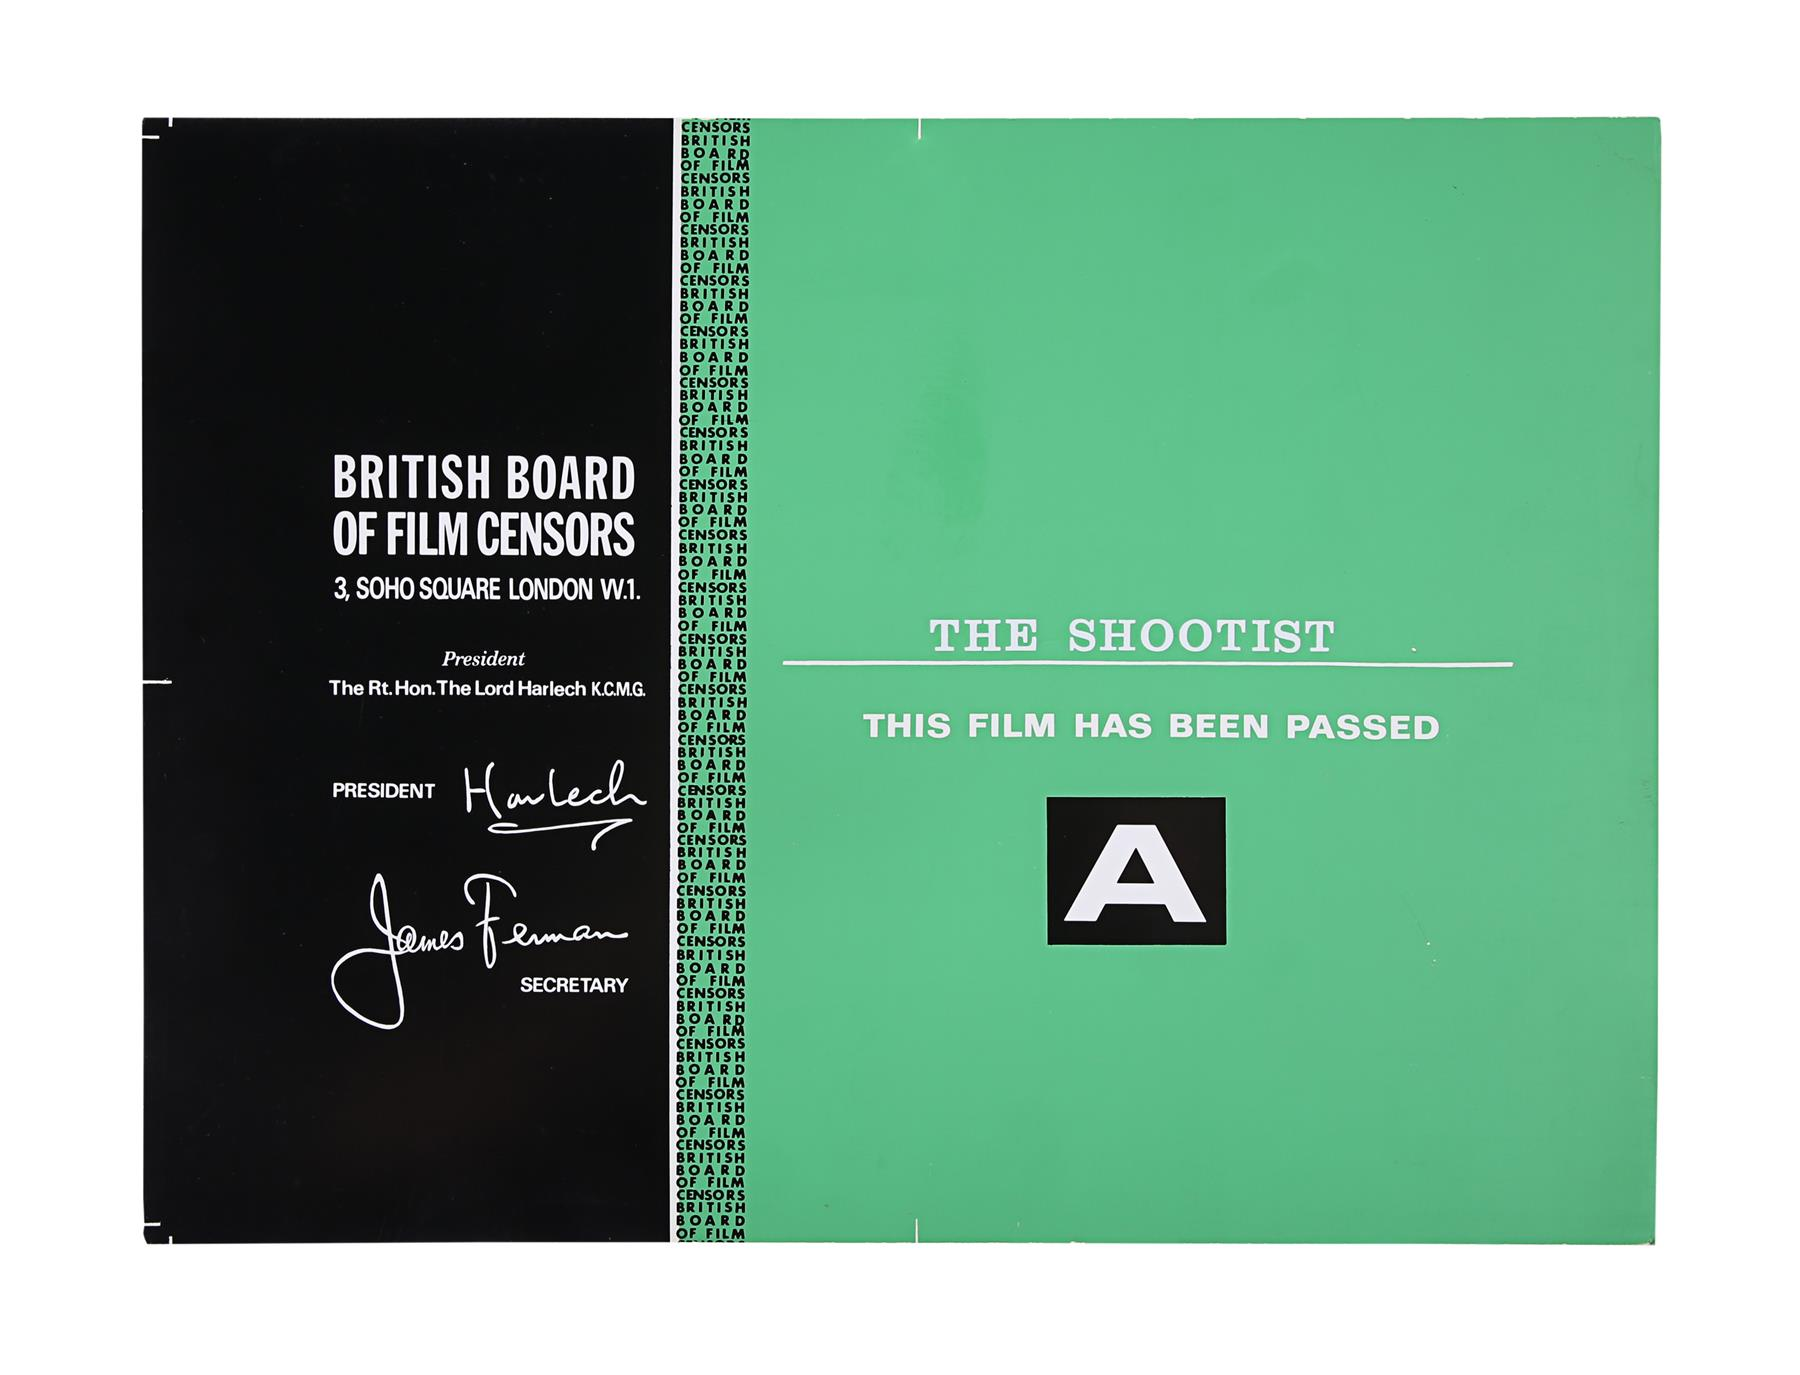 VARIOUS WESTERN PRODUCTIONS - BBFC Certificates - Image 5 of 5